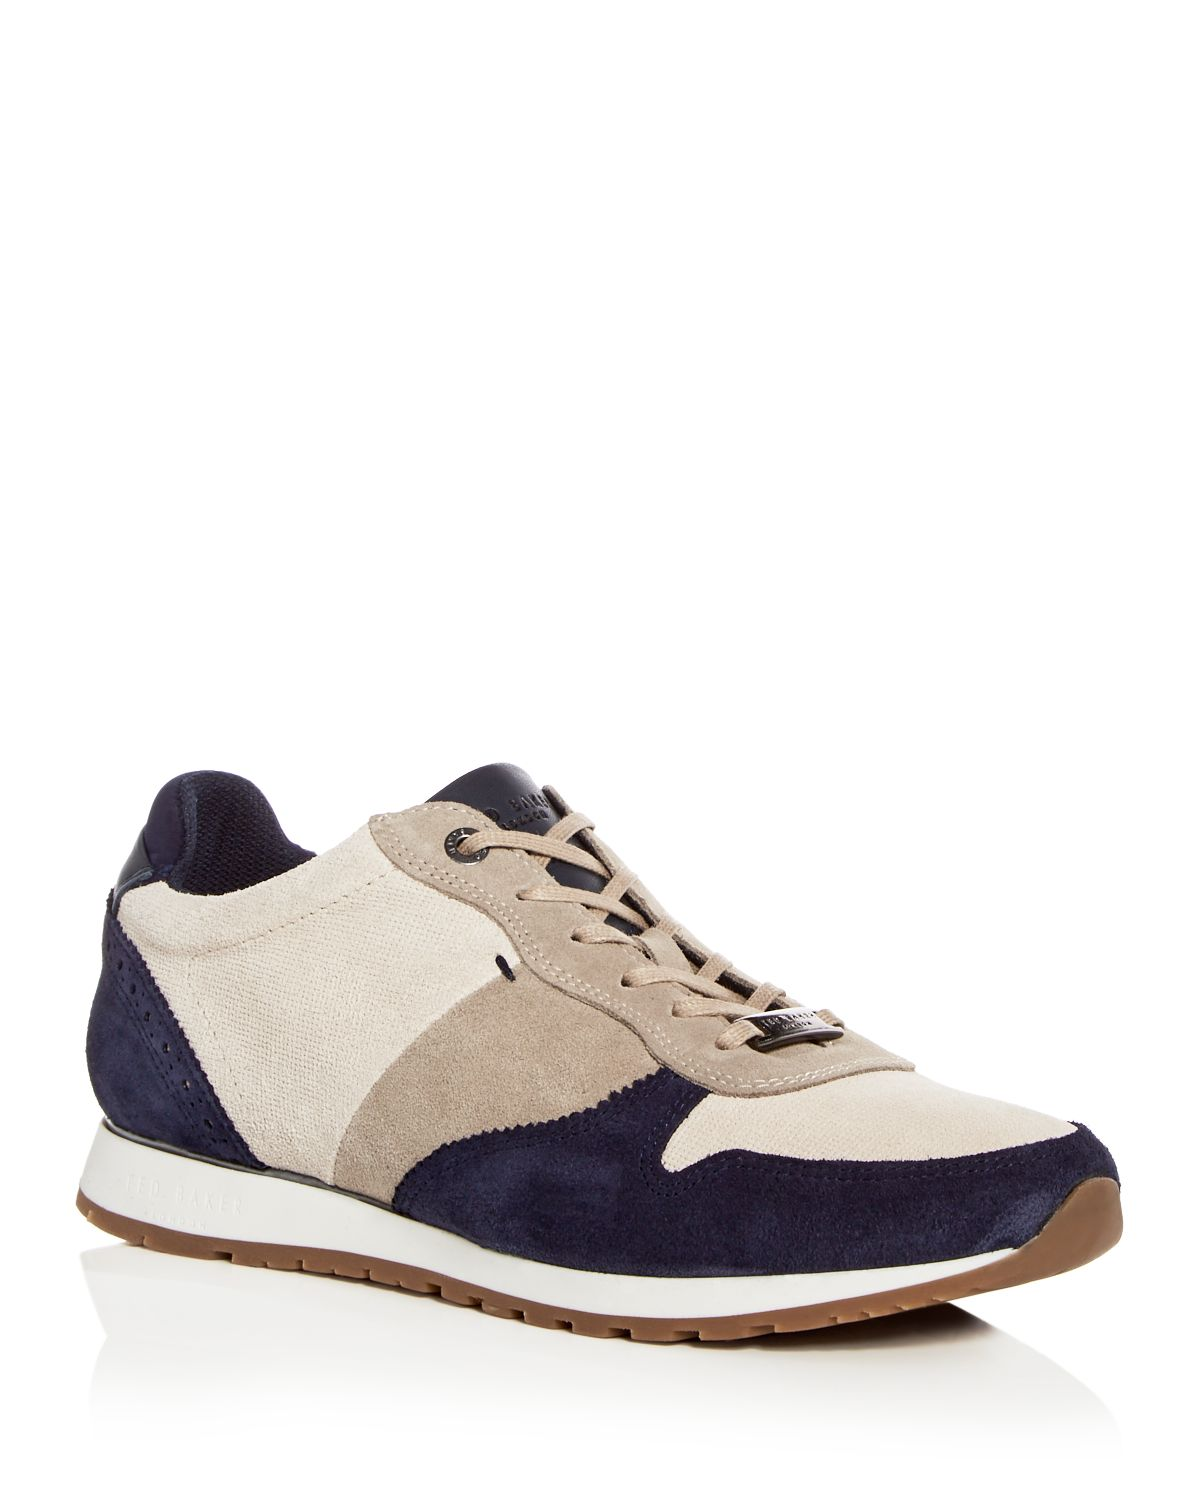 Ted Baker Men's Shindl Suede Lace Up Sneakers